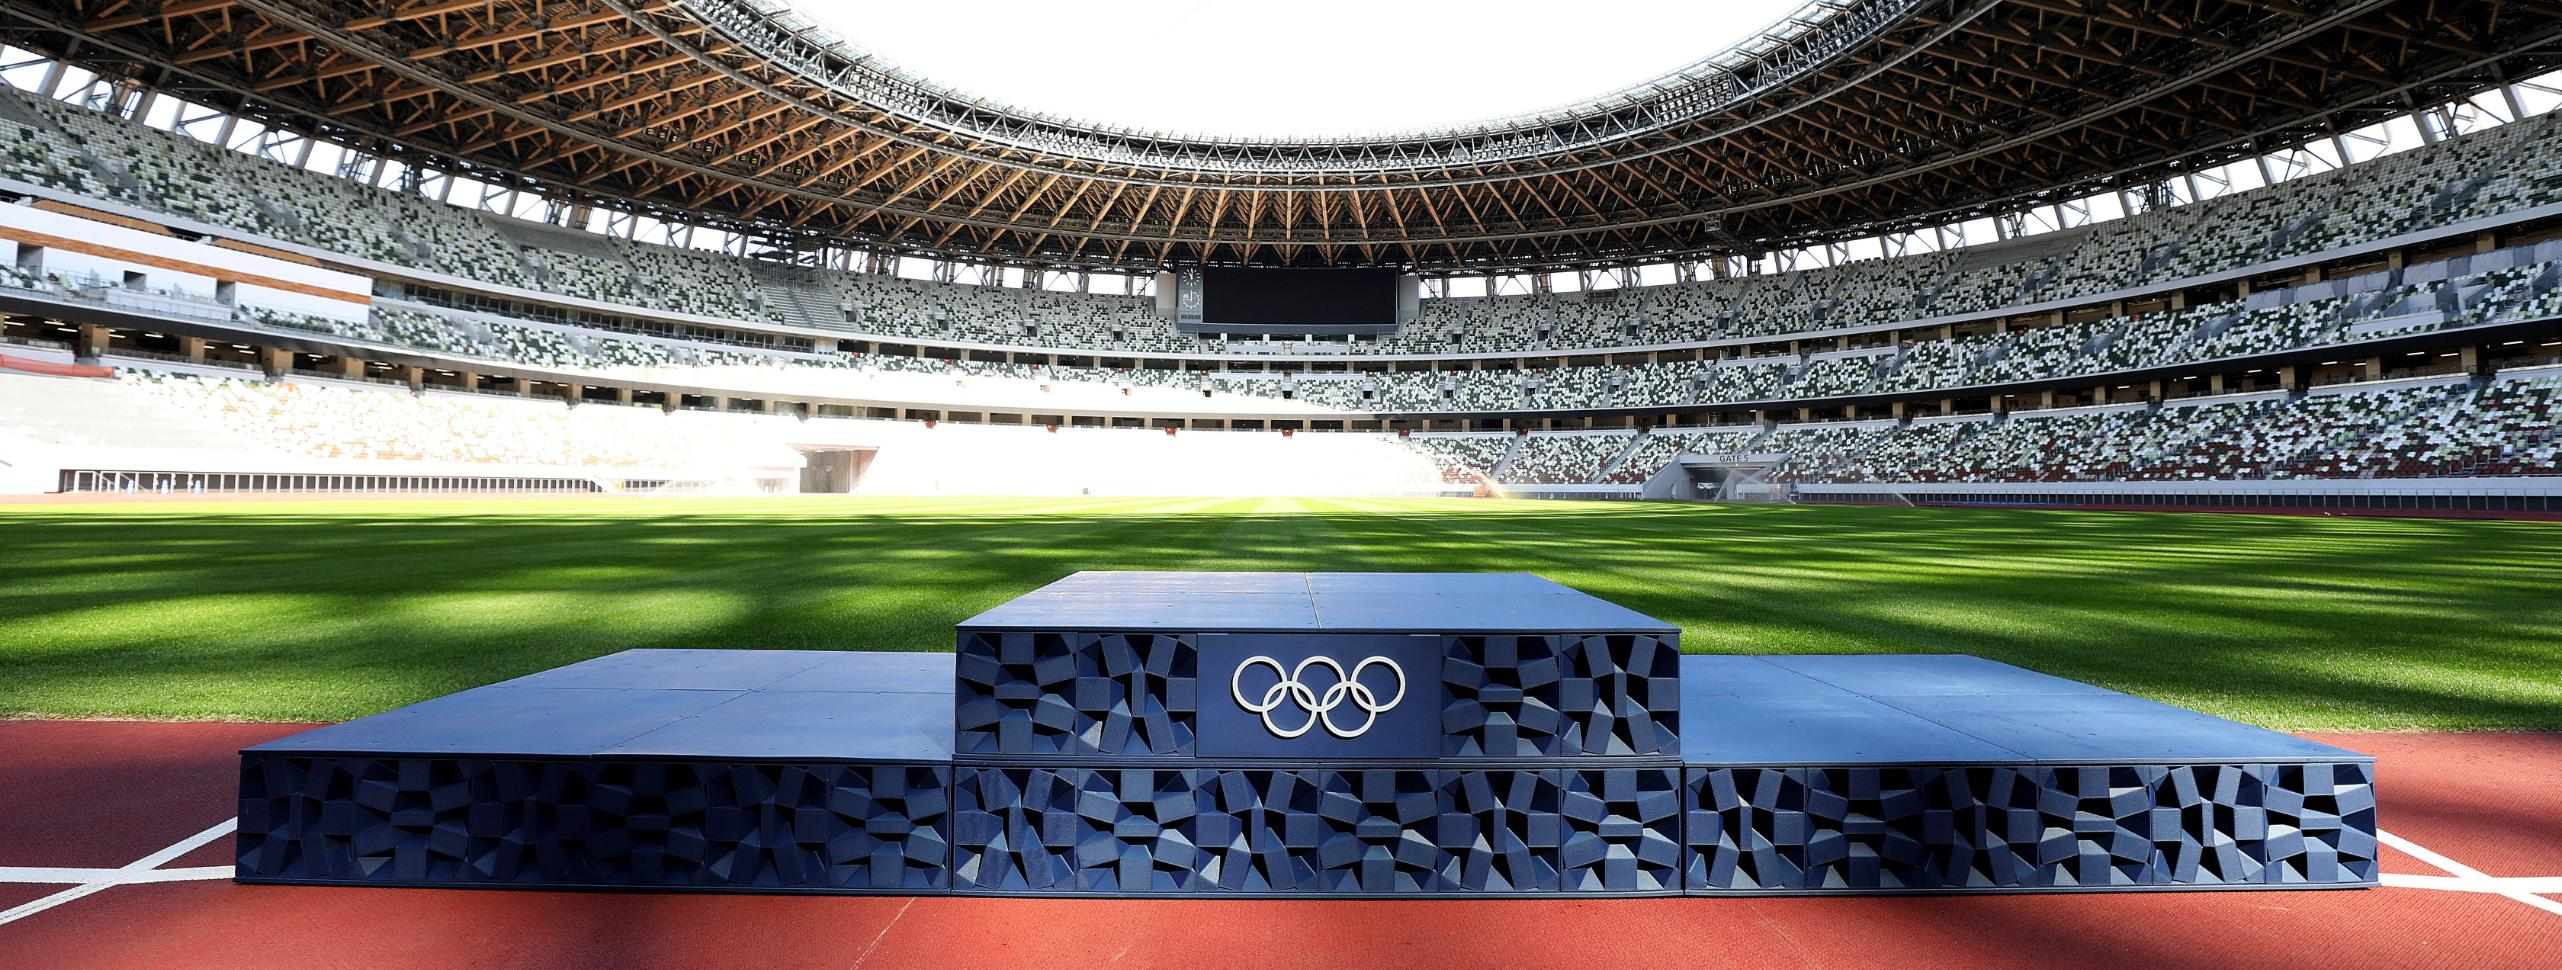 TOKYO 2020 CELEBRATES 50 DAYS UNTIL OLYMPIC GAMES, UNVEILS VICTORY CEREMONY PODIUMS, COSTUMES, MUSIC AND MEDAL TRAYS